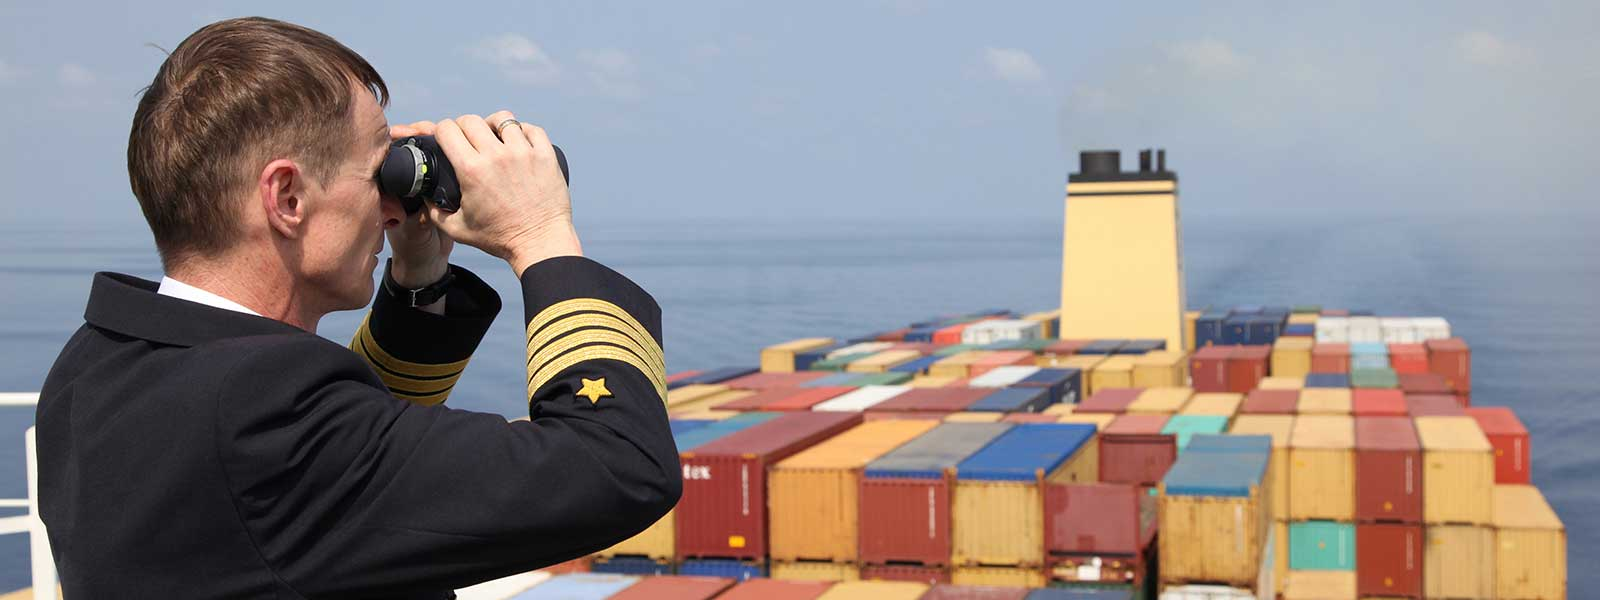 Captain on a container ship1600x600